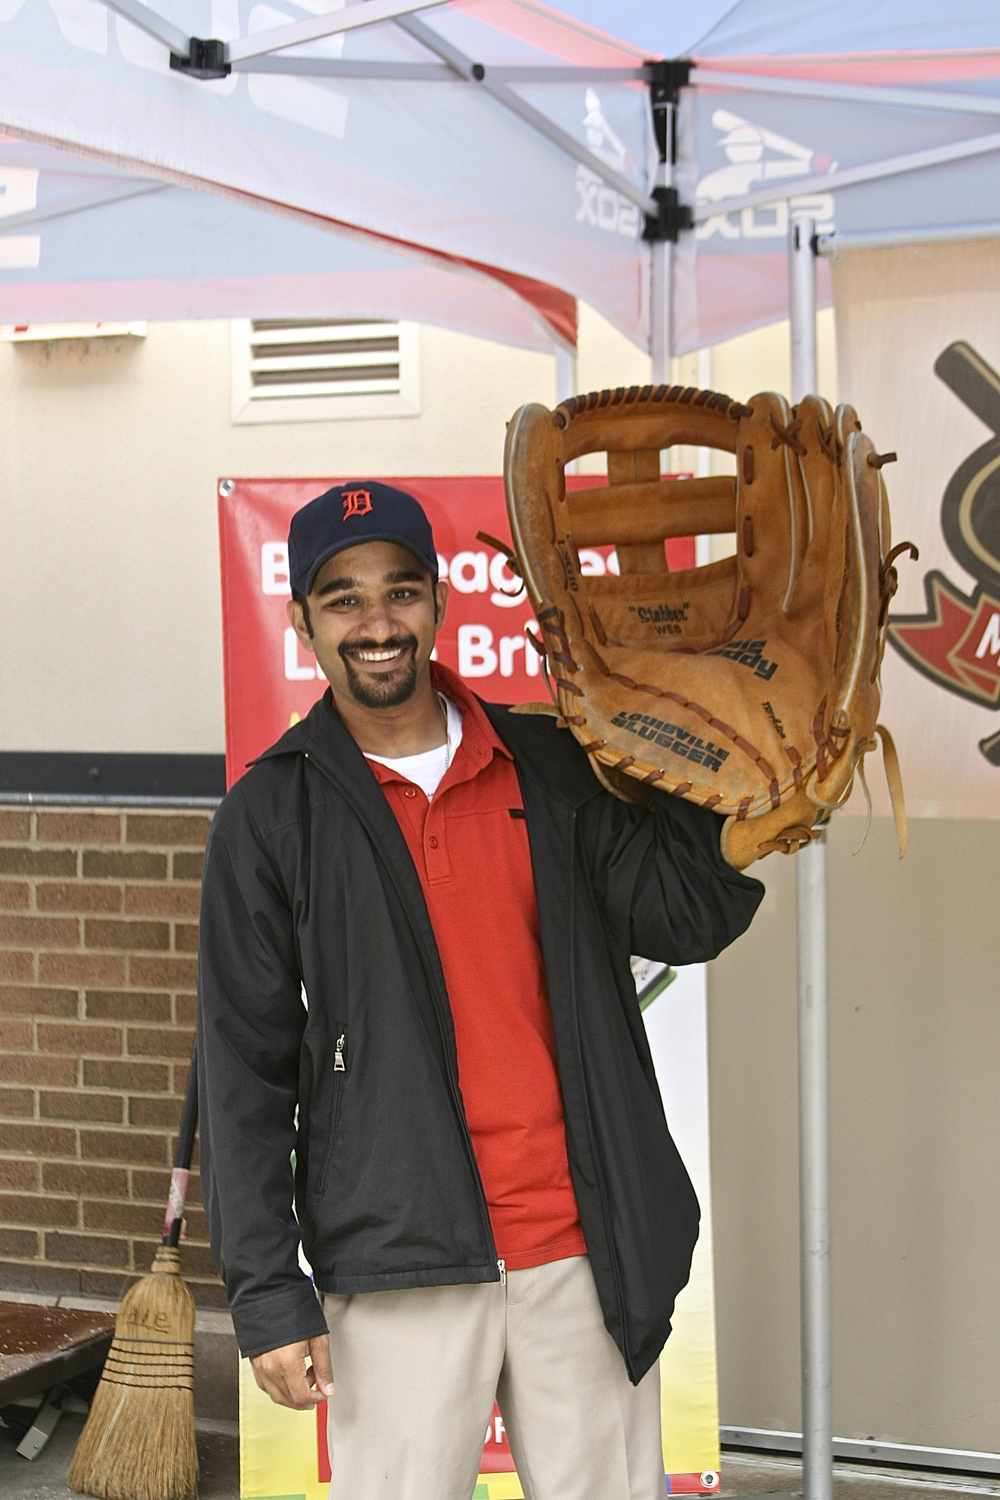 Me and a giant glove